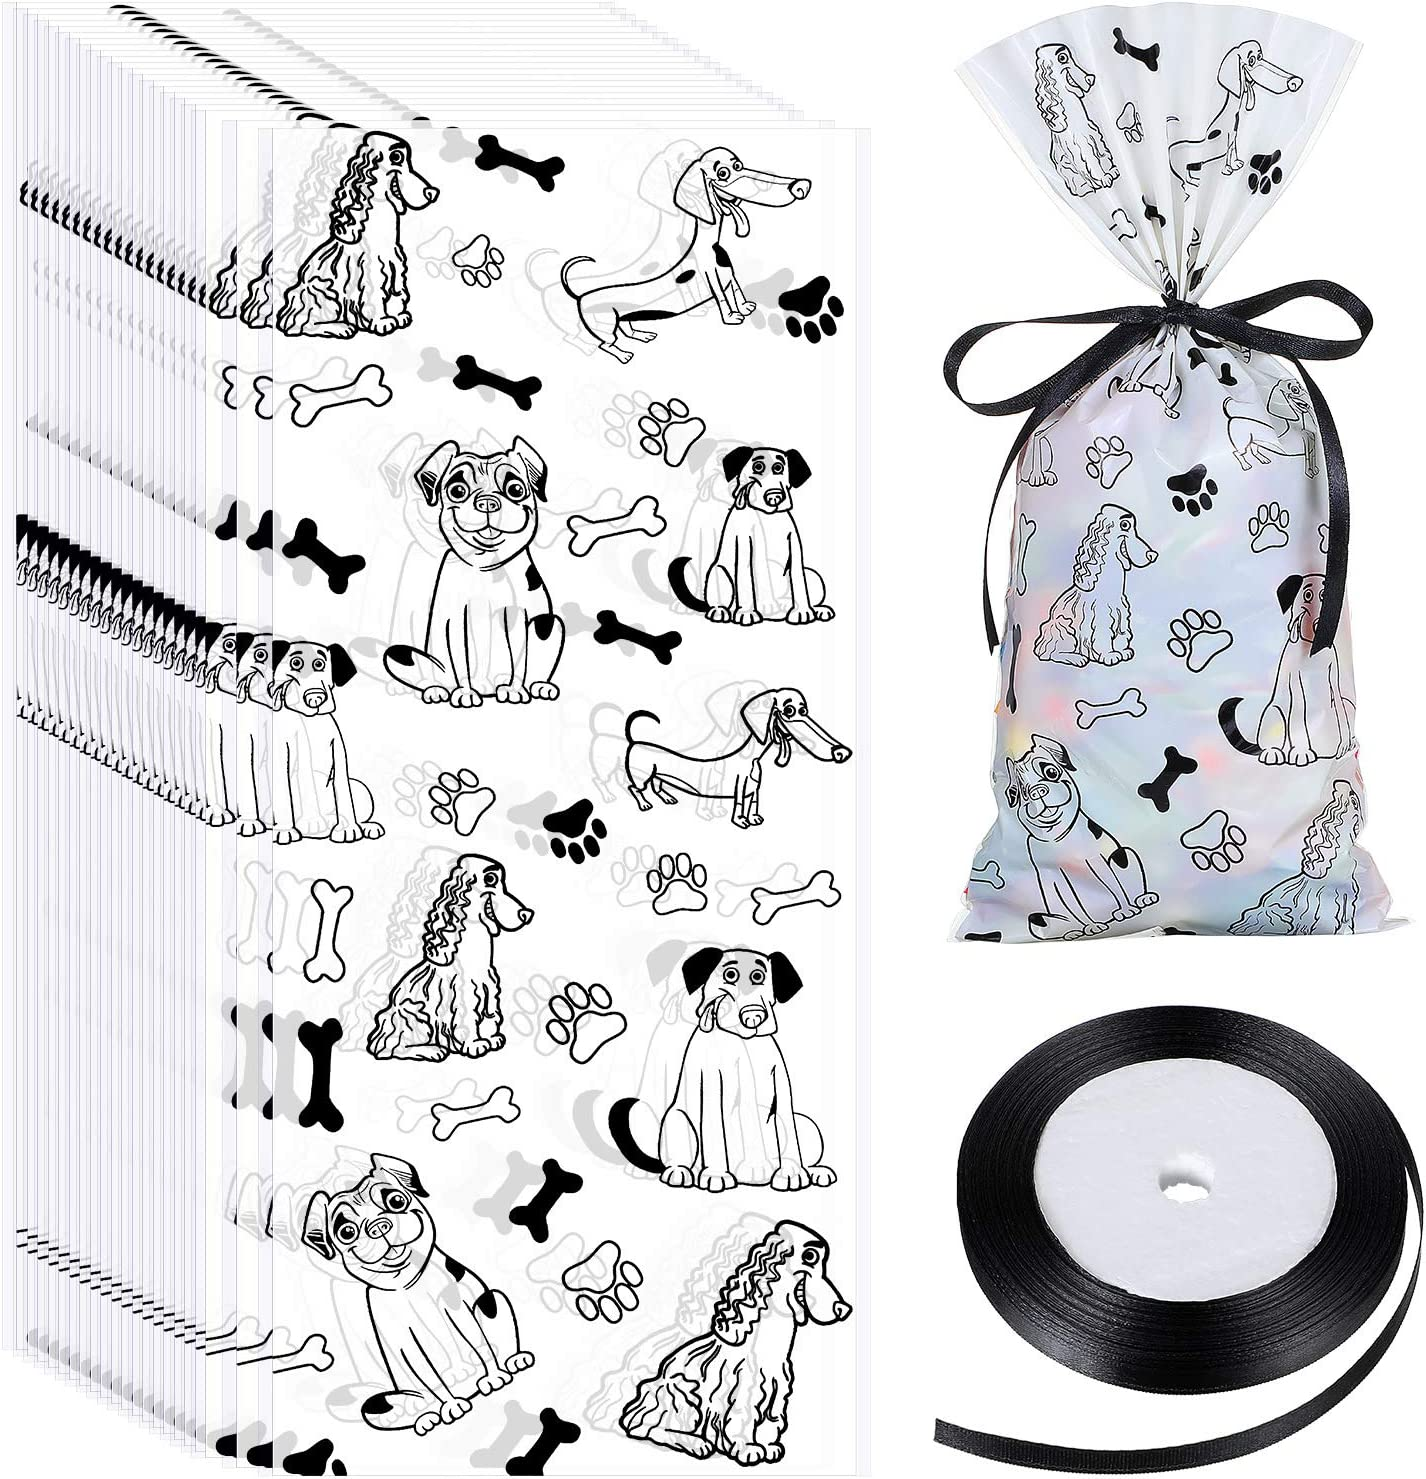 Contact us 4 Lgr Qty Paw Print Favor Bags Colored Paw Print Cellophane Bags Paw Print Cello Bags Bag Qty 10 Paw Print Cellophane Bags